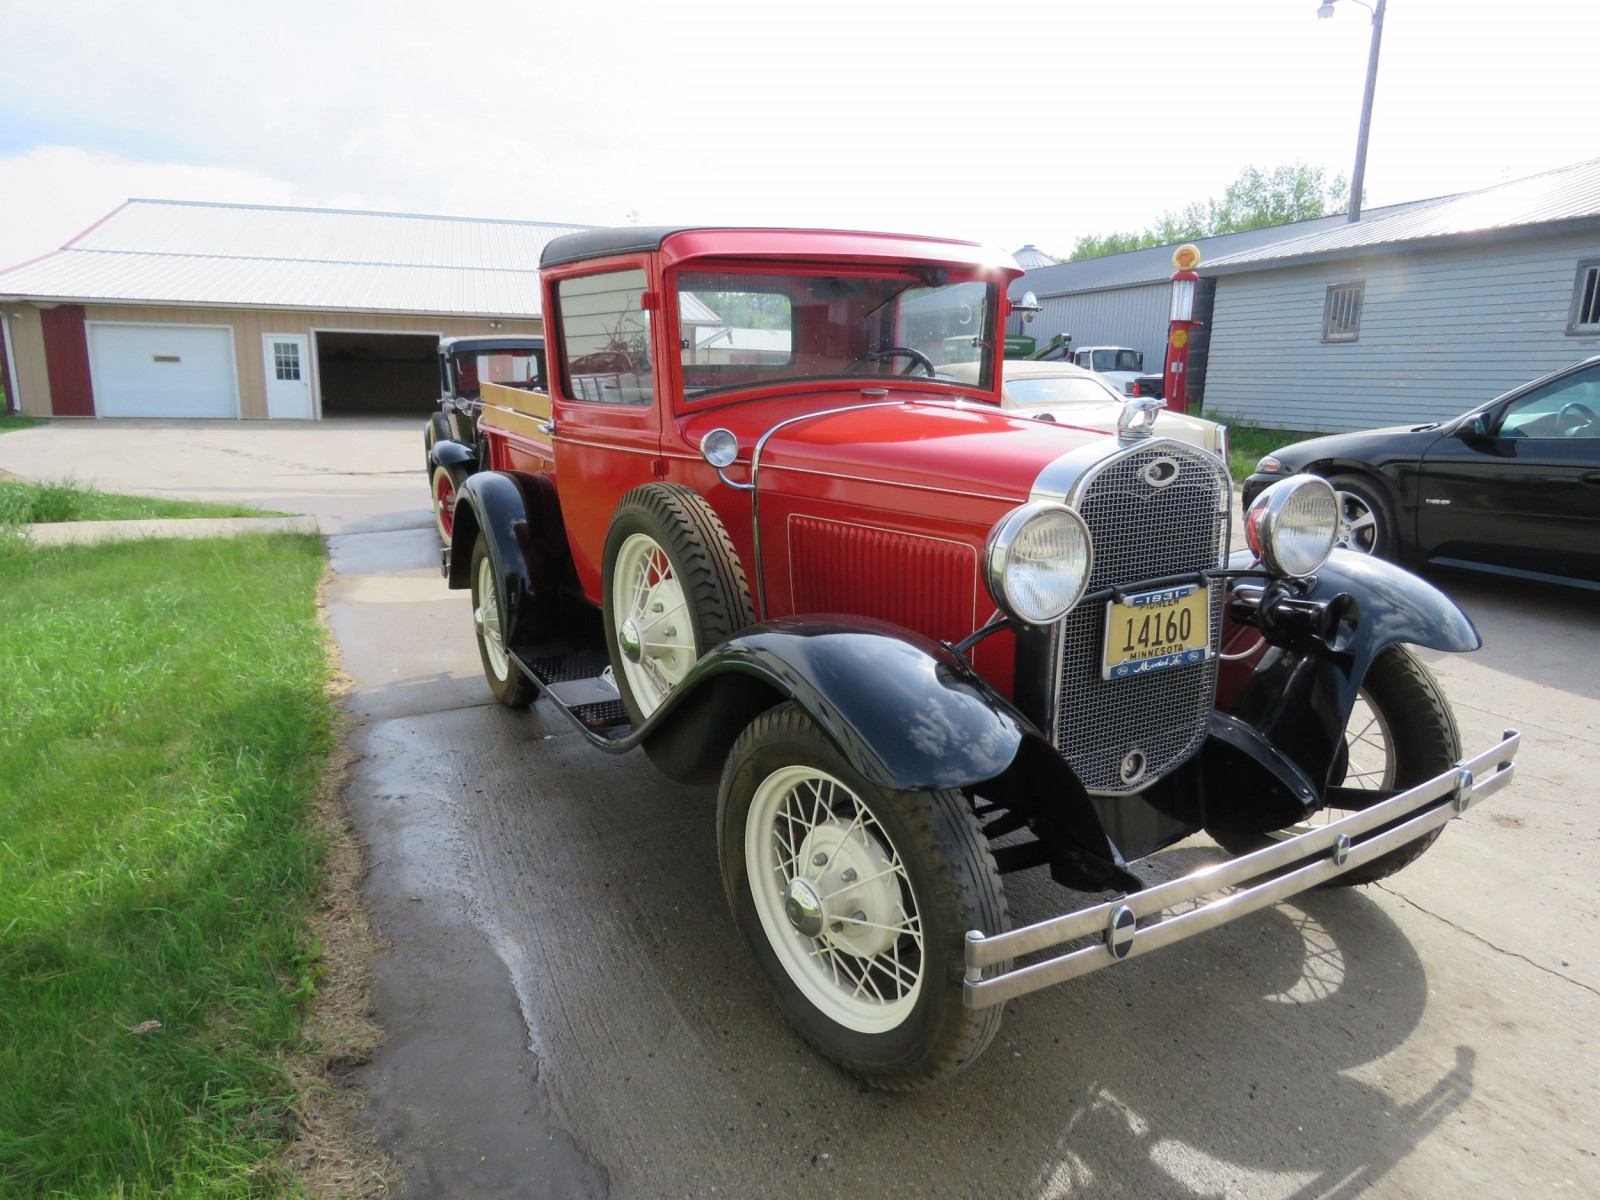 1931 Ford Model A Pickup - Image 3